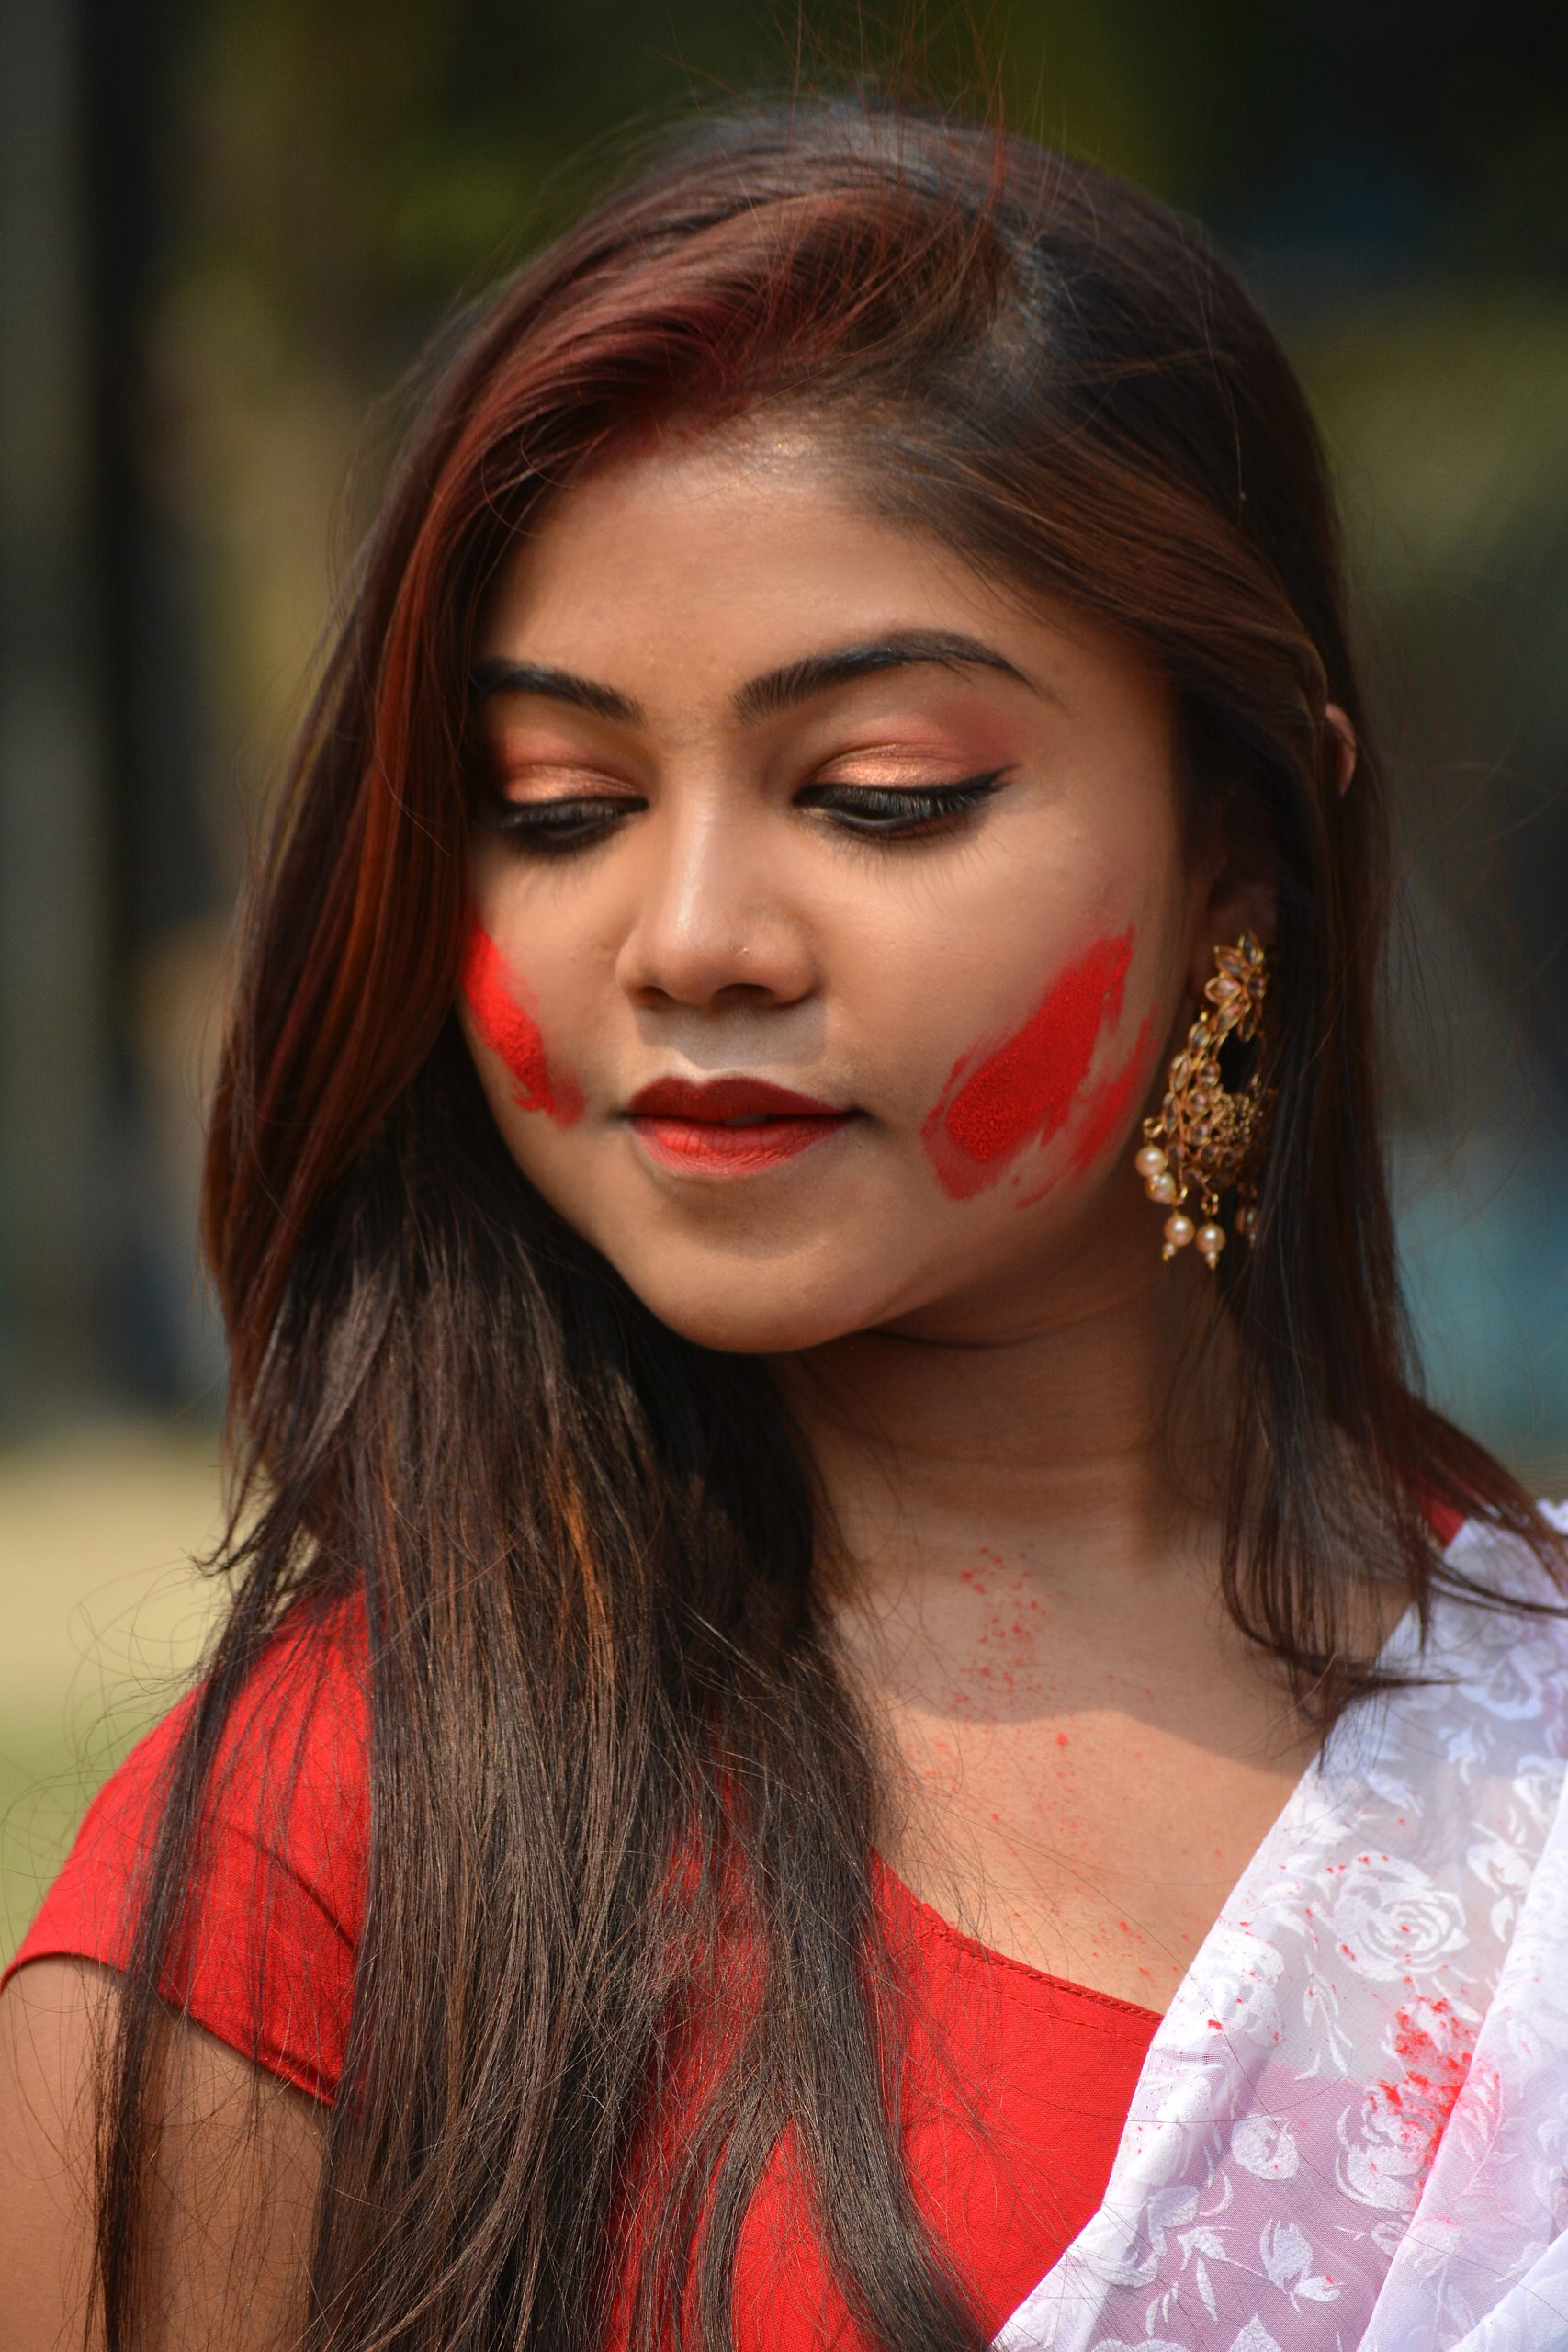 Beautiful girl with Holi color on her face